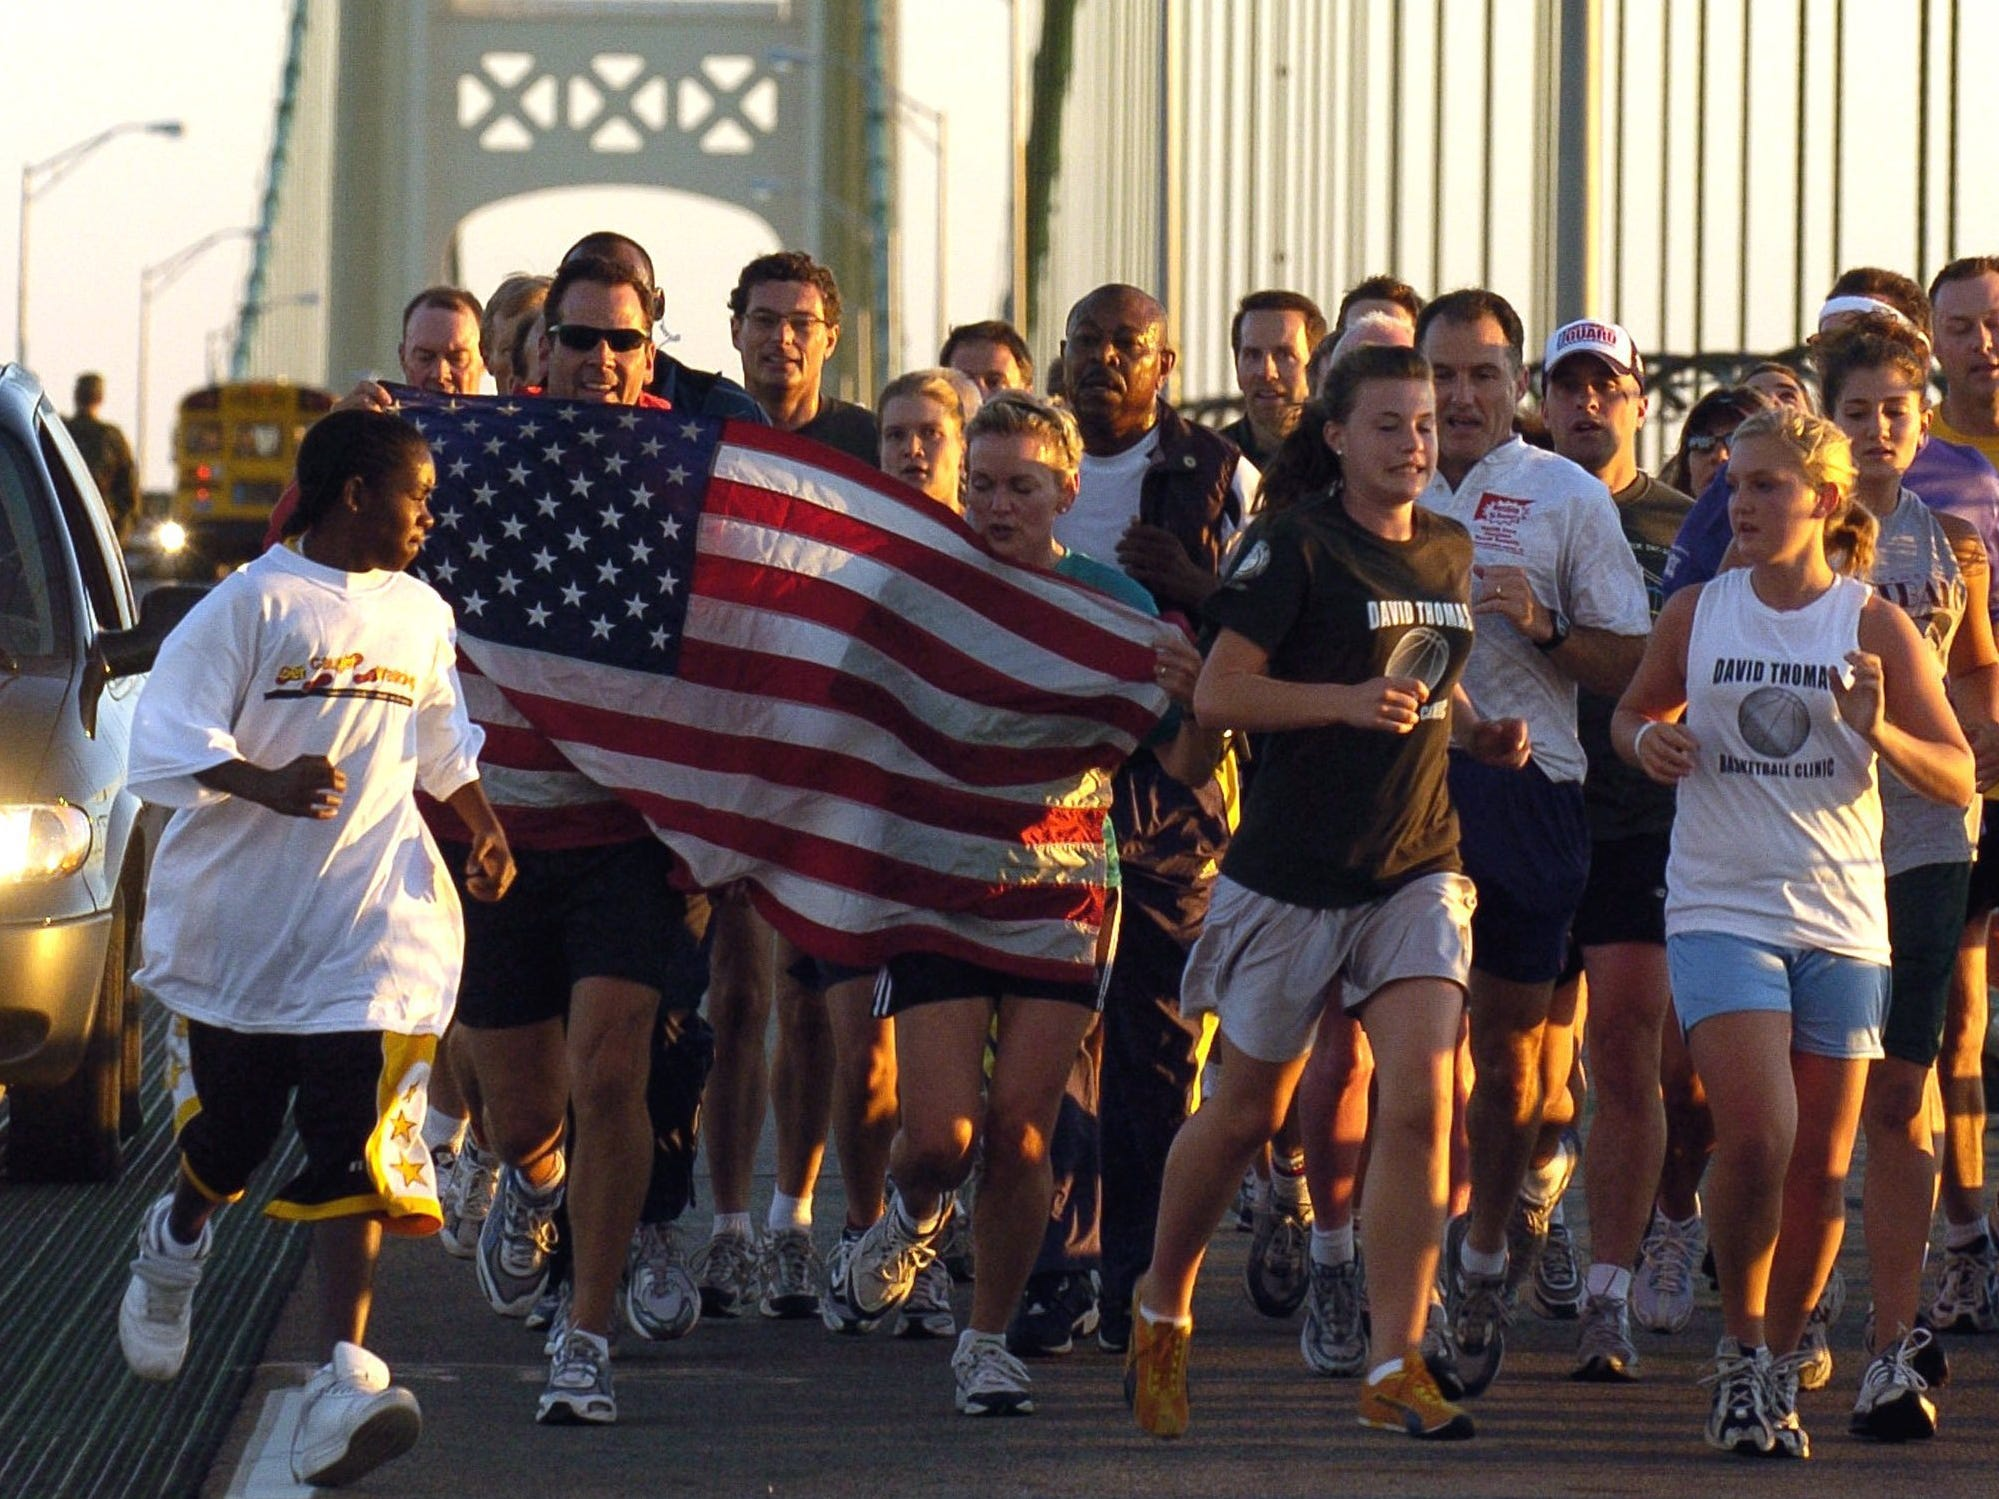 Michigan Gov. Jennifer Granholm, behind stripes on American flag, center, joins thousands of people walking and running across the five-mile Mackinac Bridge, Monday, Sept. 5, 2005, near Mackinaw City. By custom, the governor leads the walk.